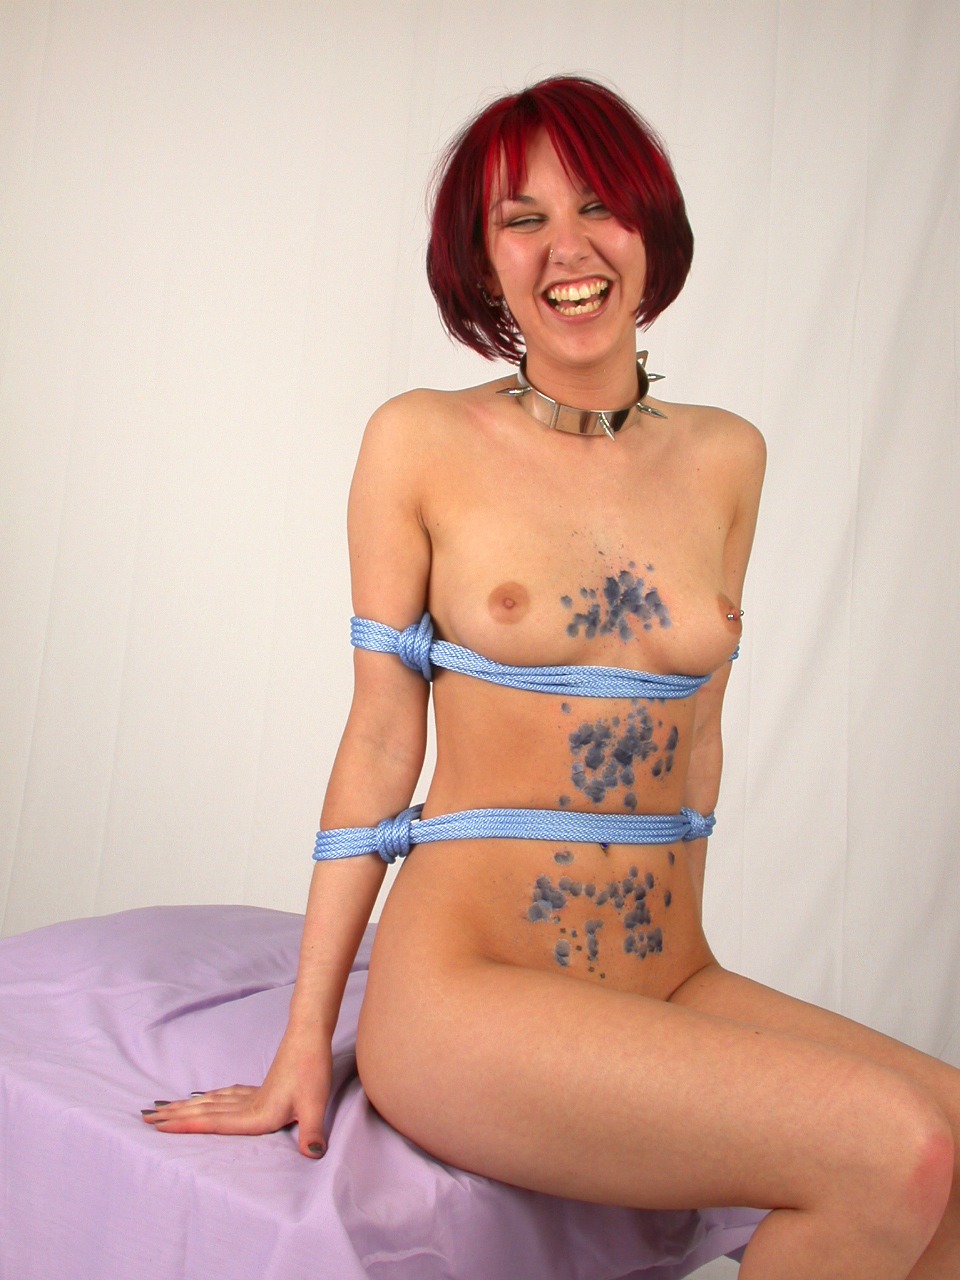 happybdsm:  Hot wax? Pah! (Submission by Furneaux/Stu of FX Photographic)